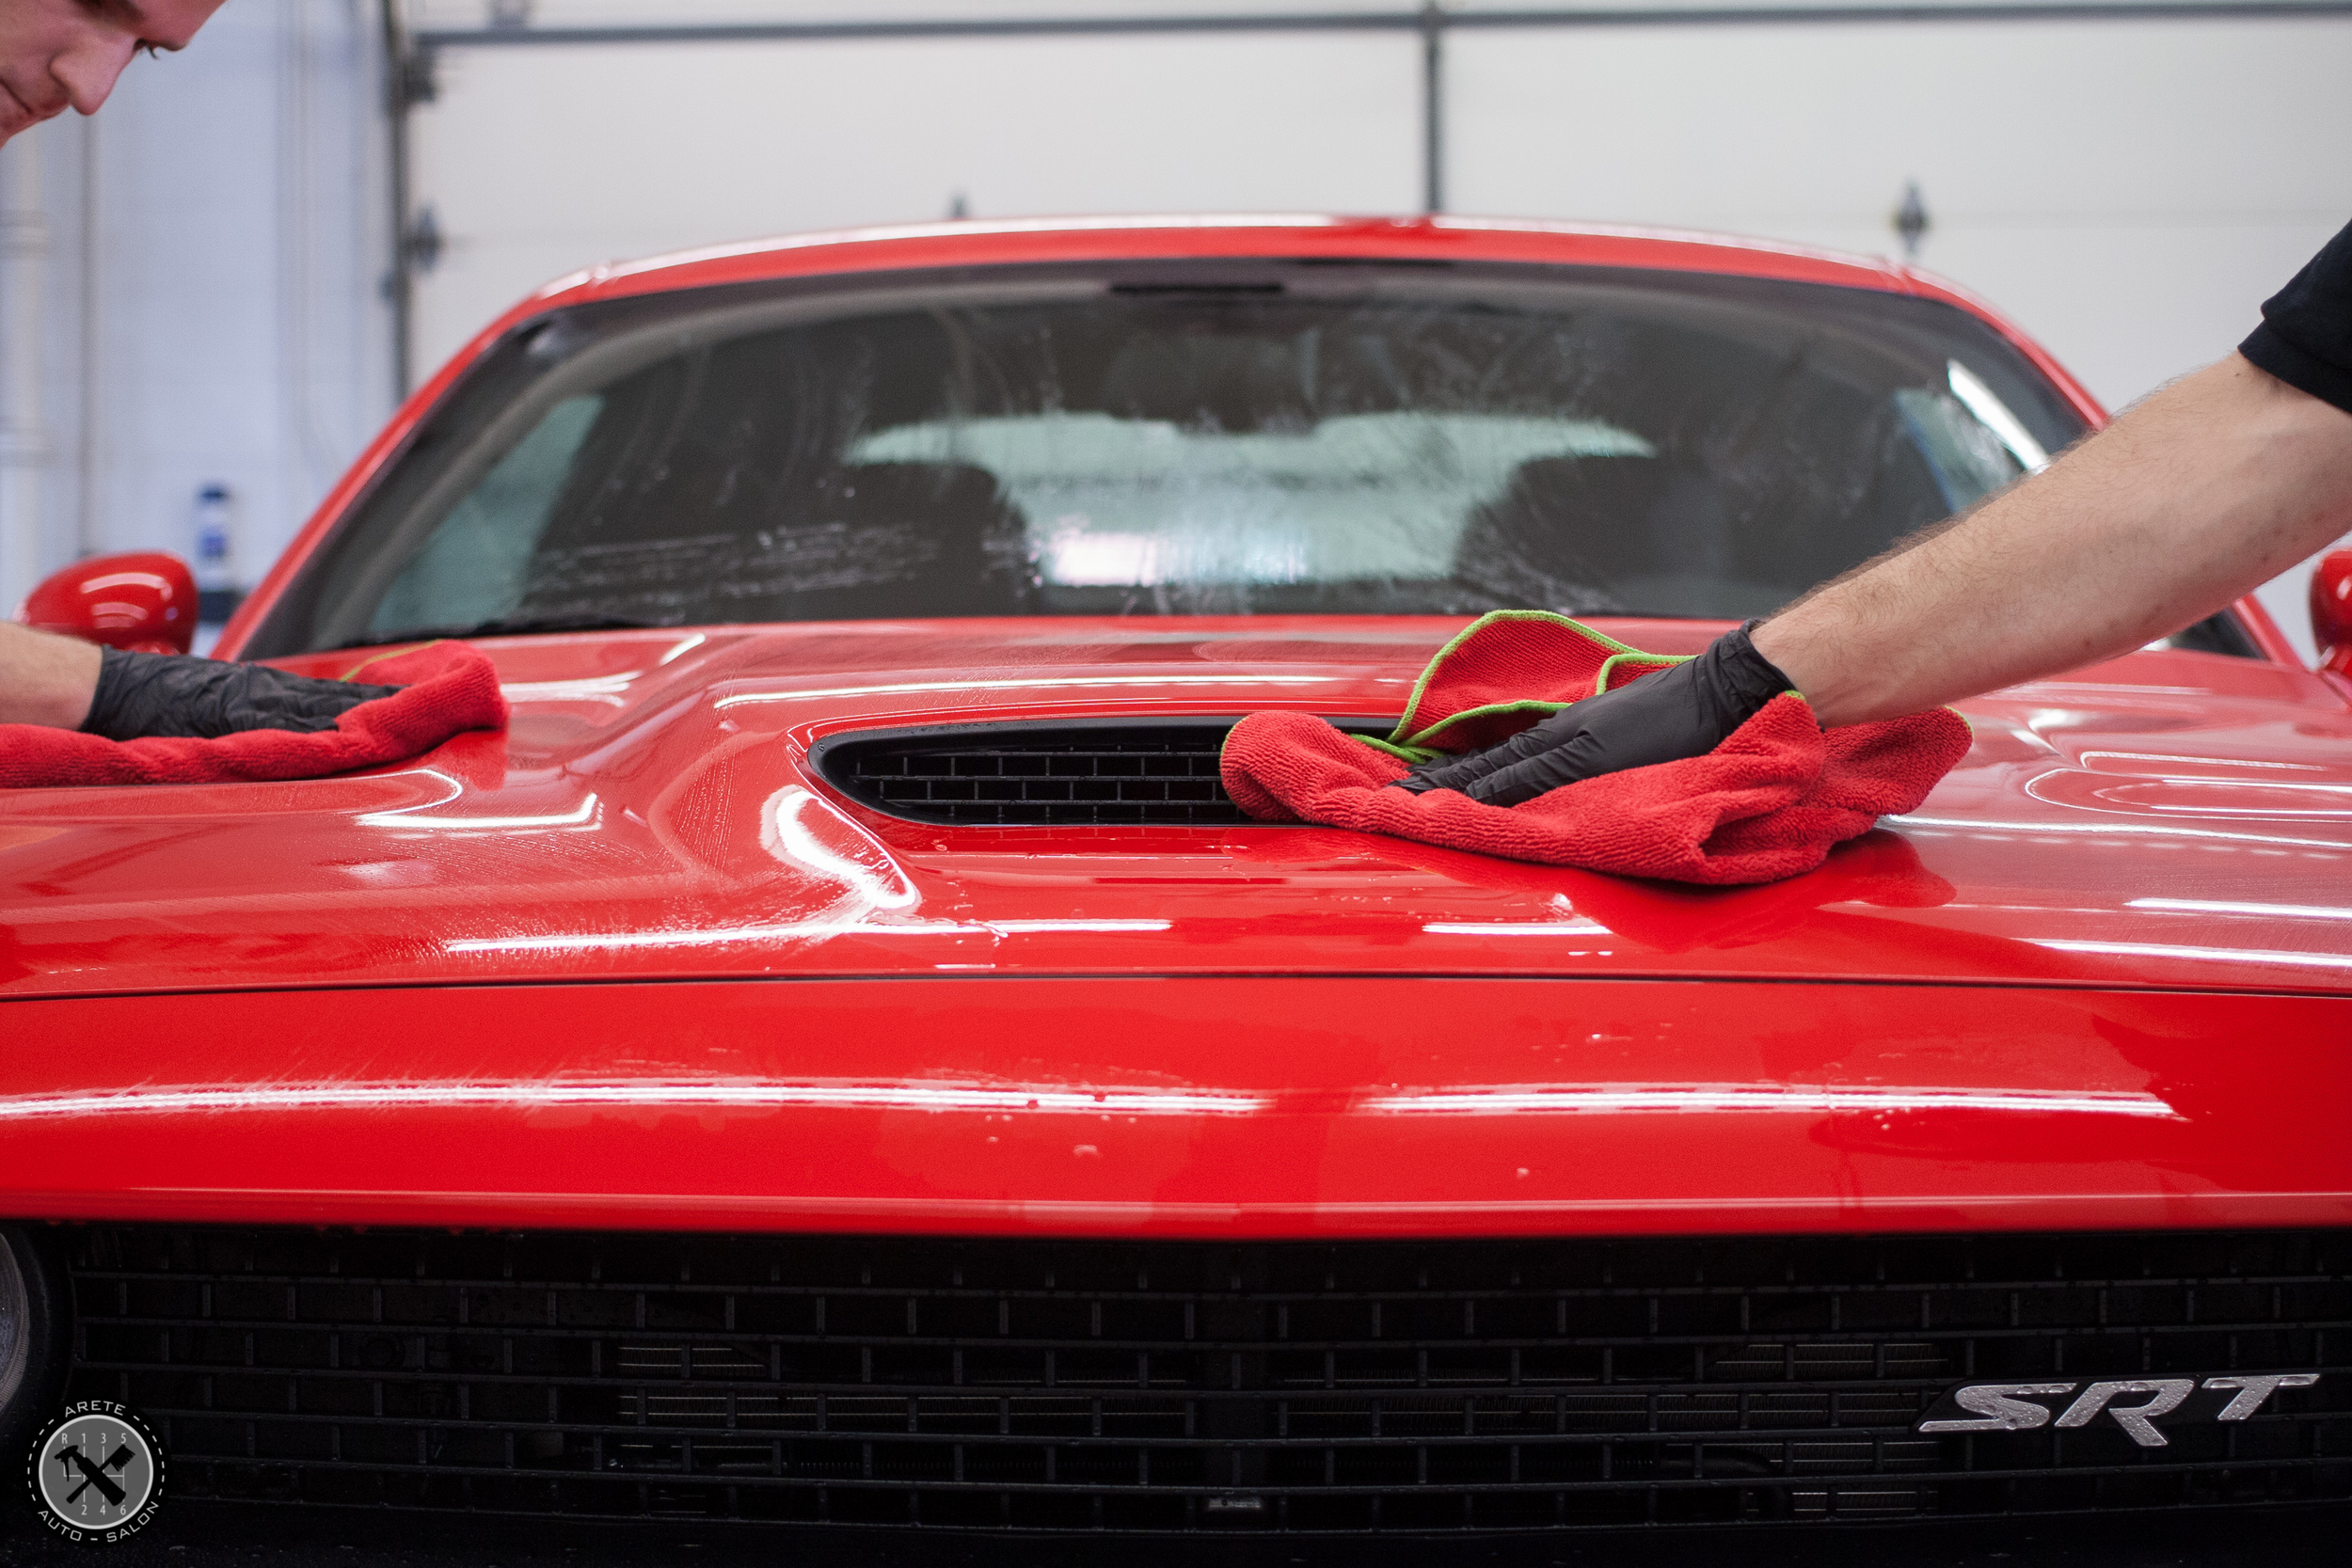 Drying the vehicle with fine microfiber towels post decontamination.